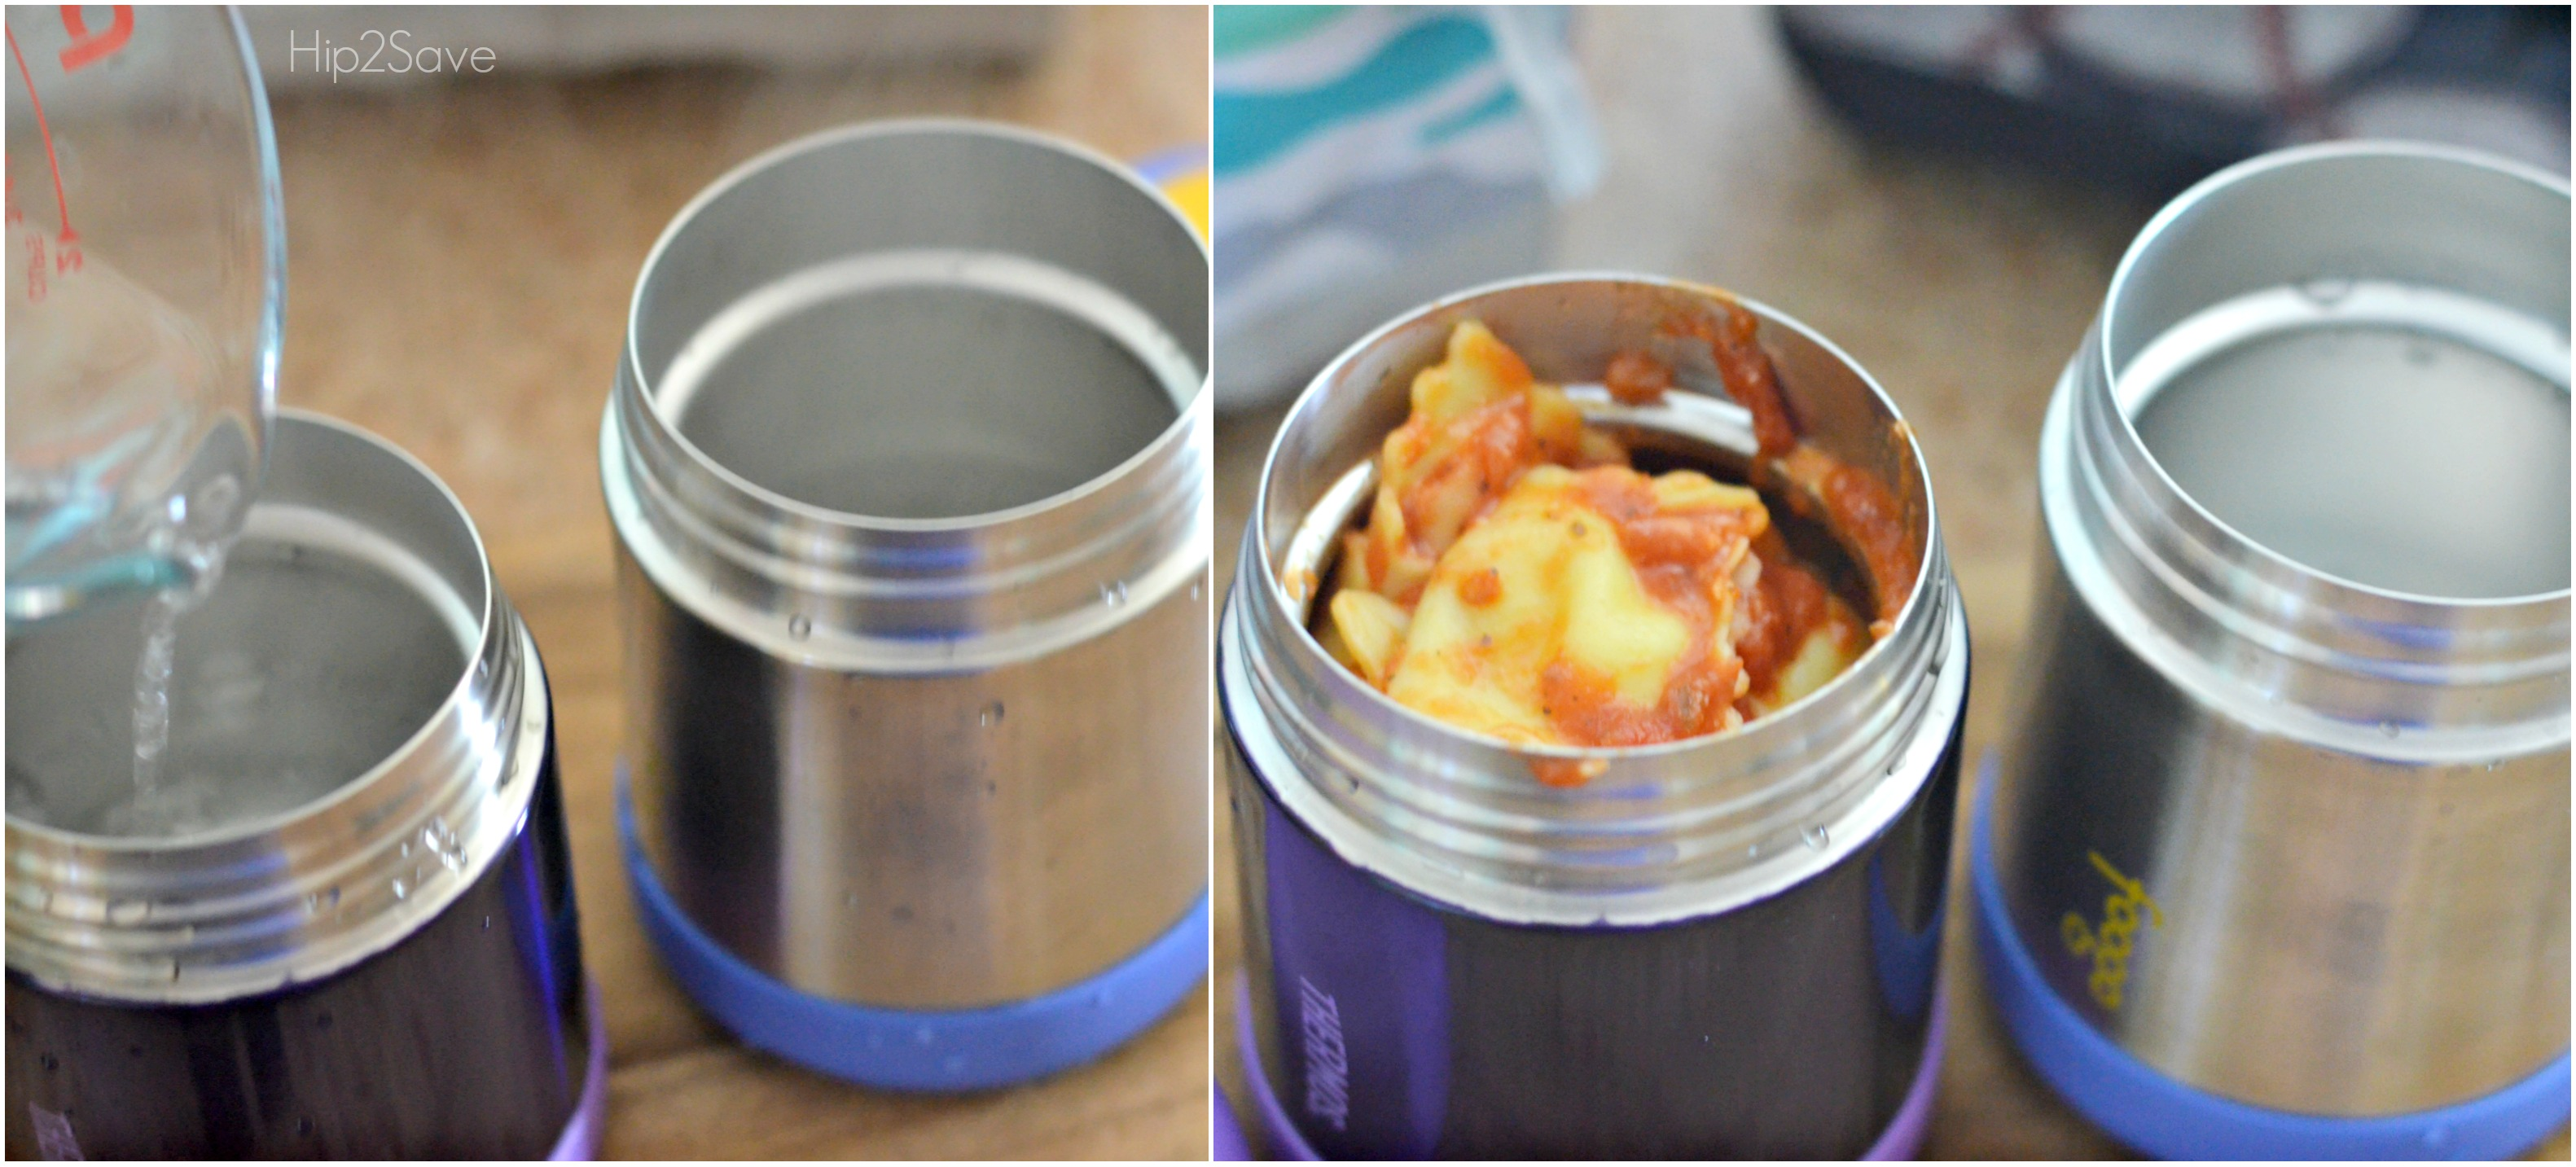 pouring warm water into a thermos to heat the thermos